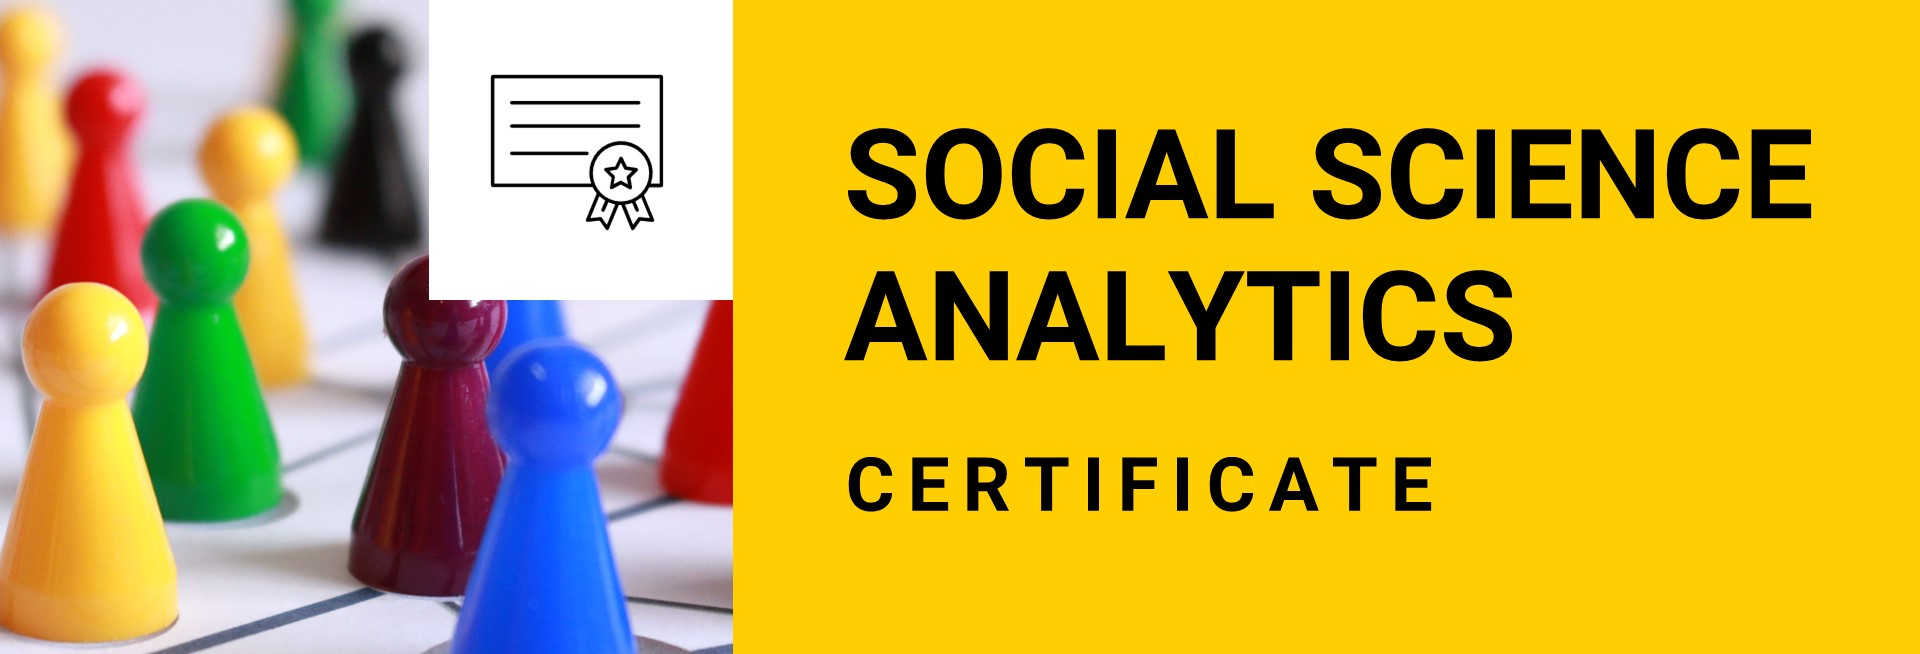 Social Science Analytics Certificate